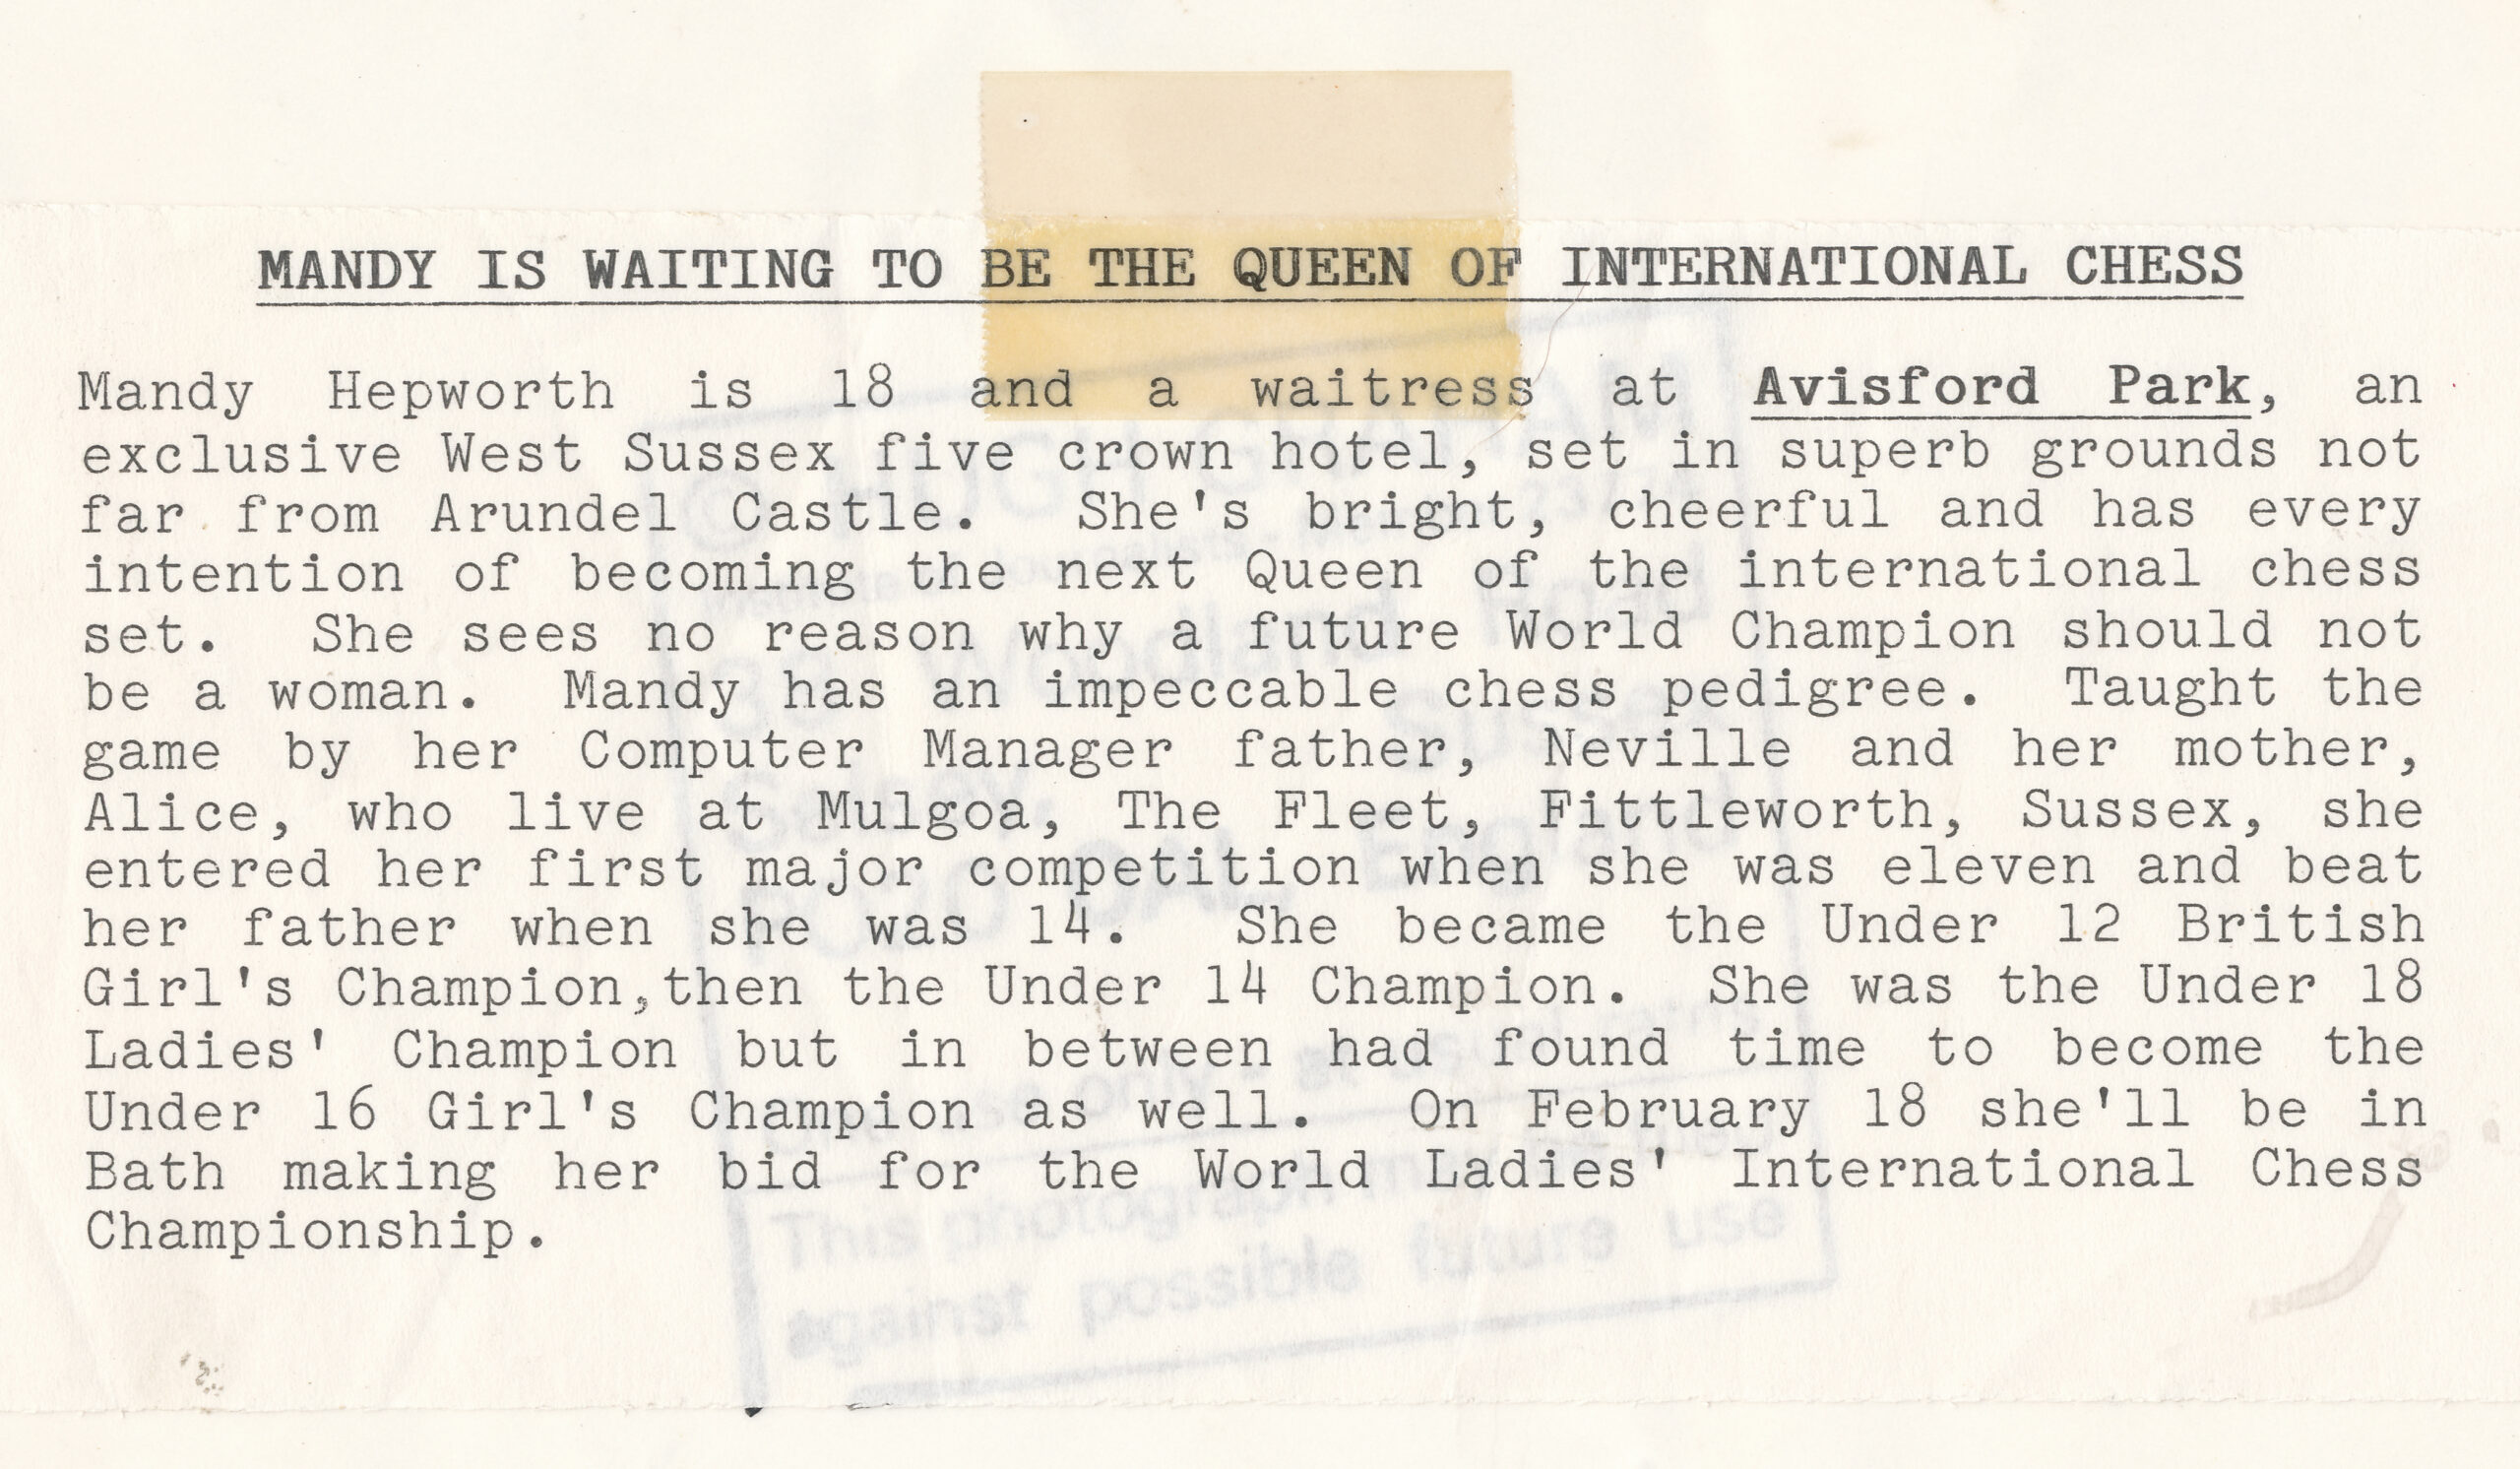 1986 Press Release for Mandy Hepworth. Warning : some details are not entirely accurate.